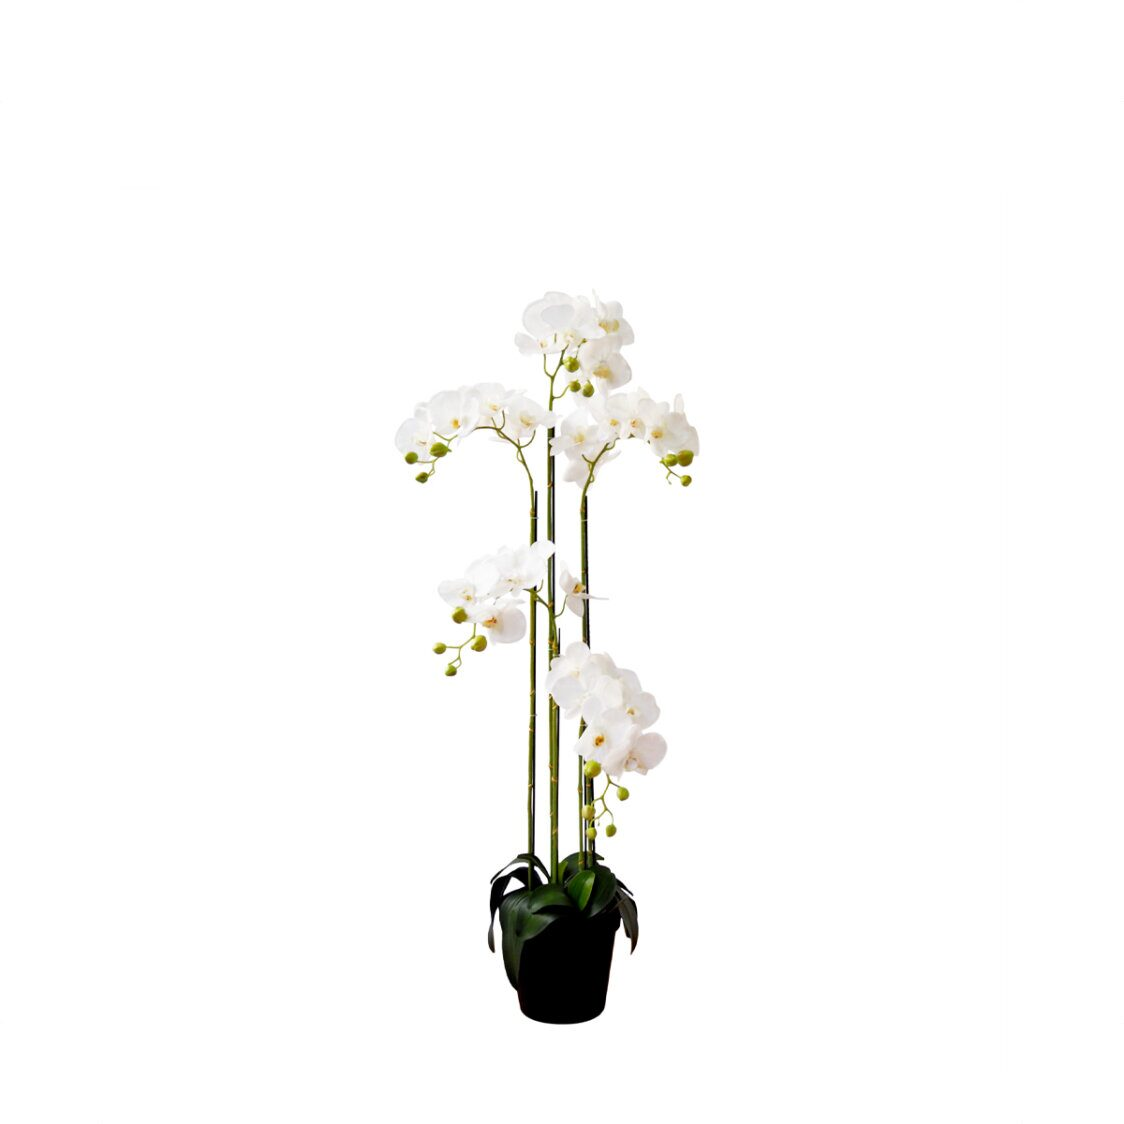 Pollyanna 5 Stalk Potted White Orchid